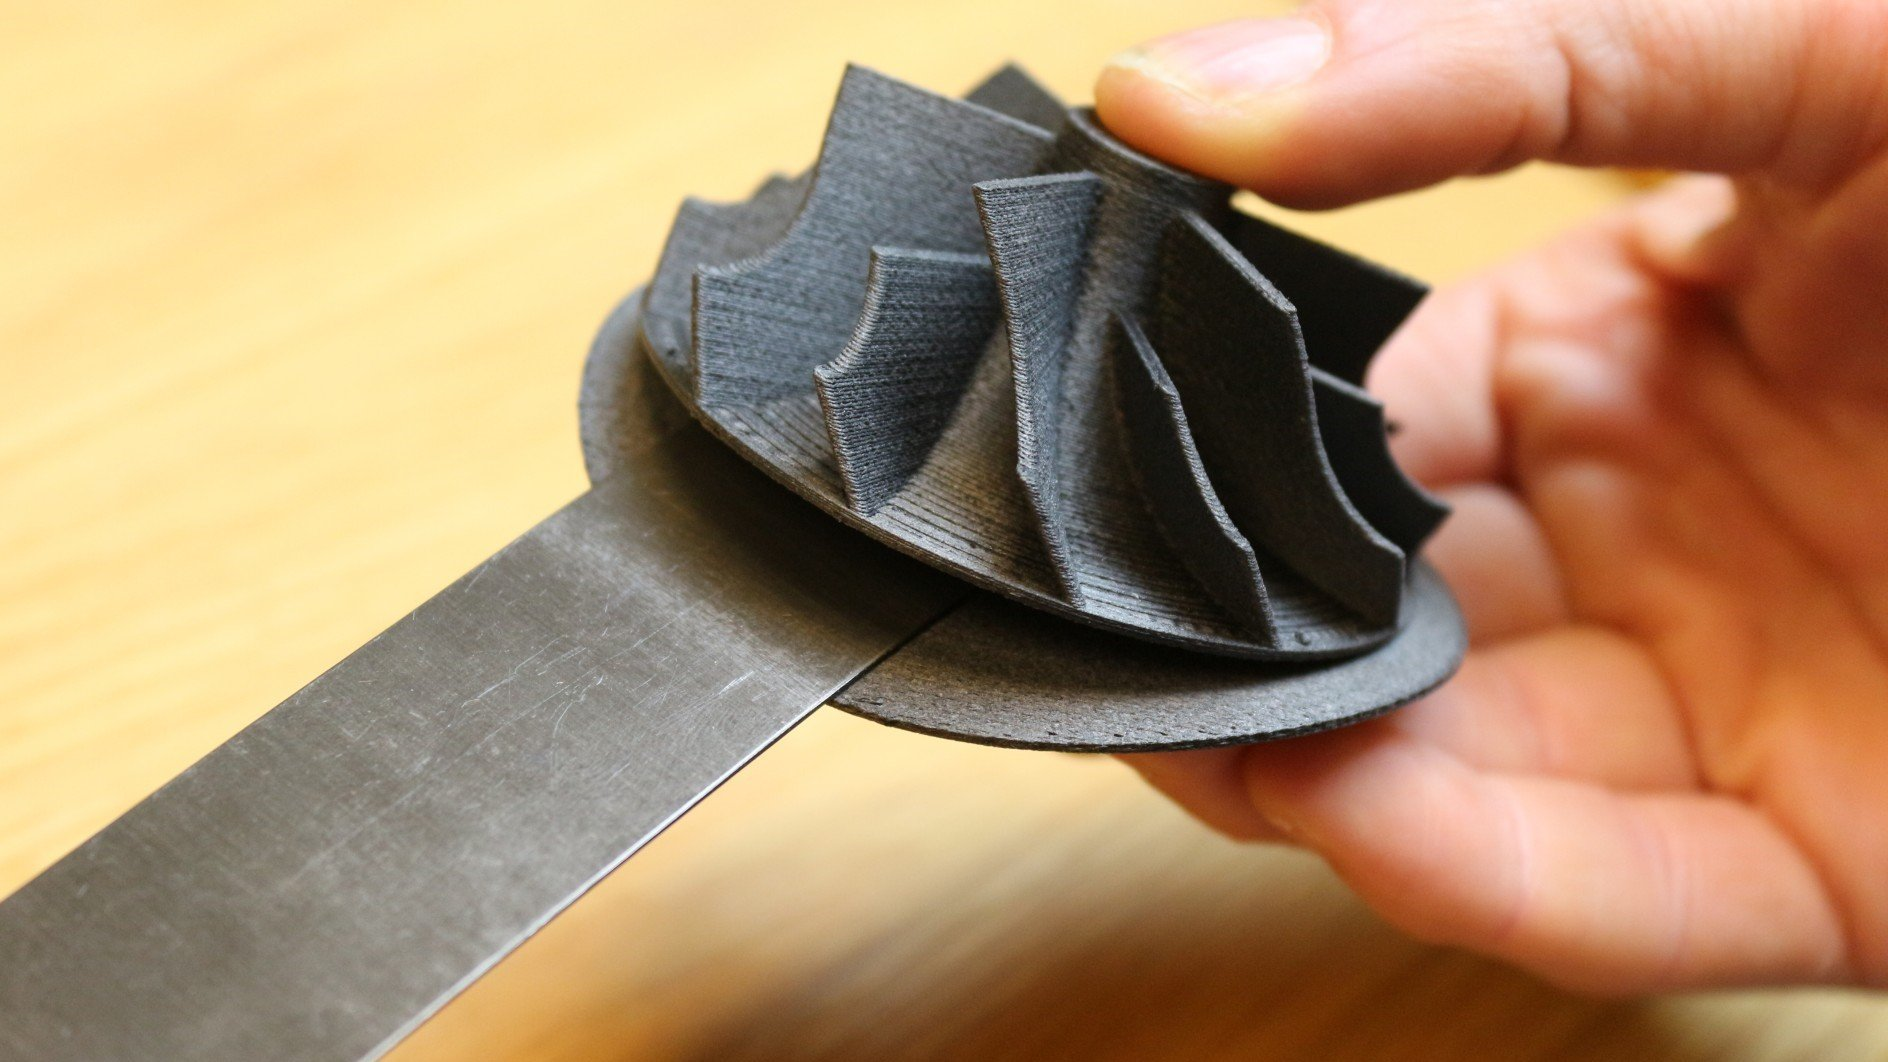 3D Printing Raft: When You Should Use It? | All3DP